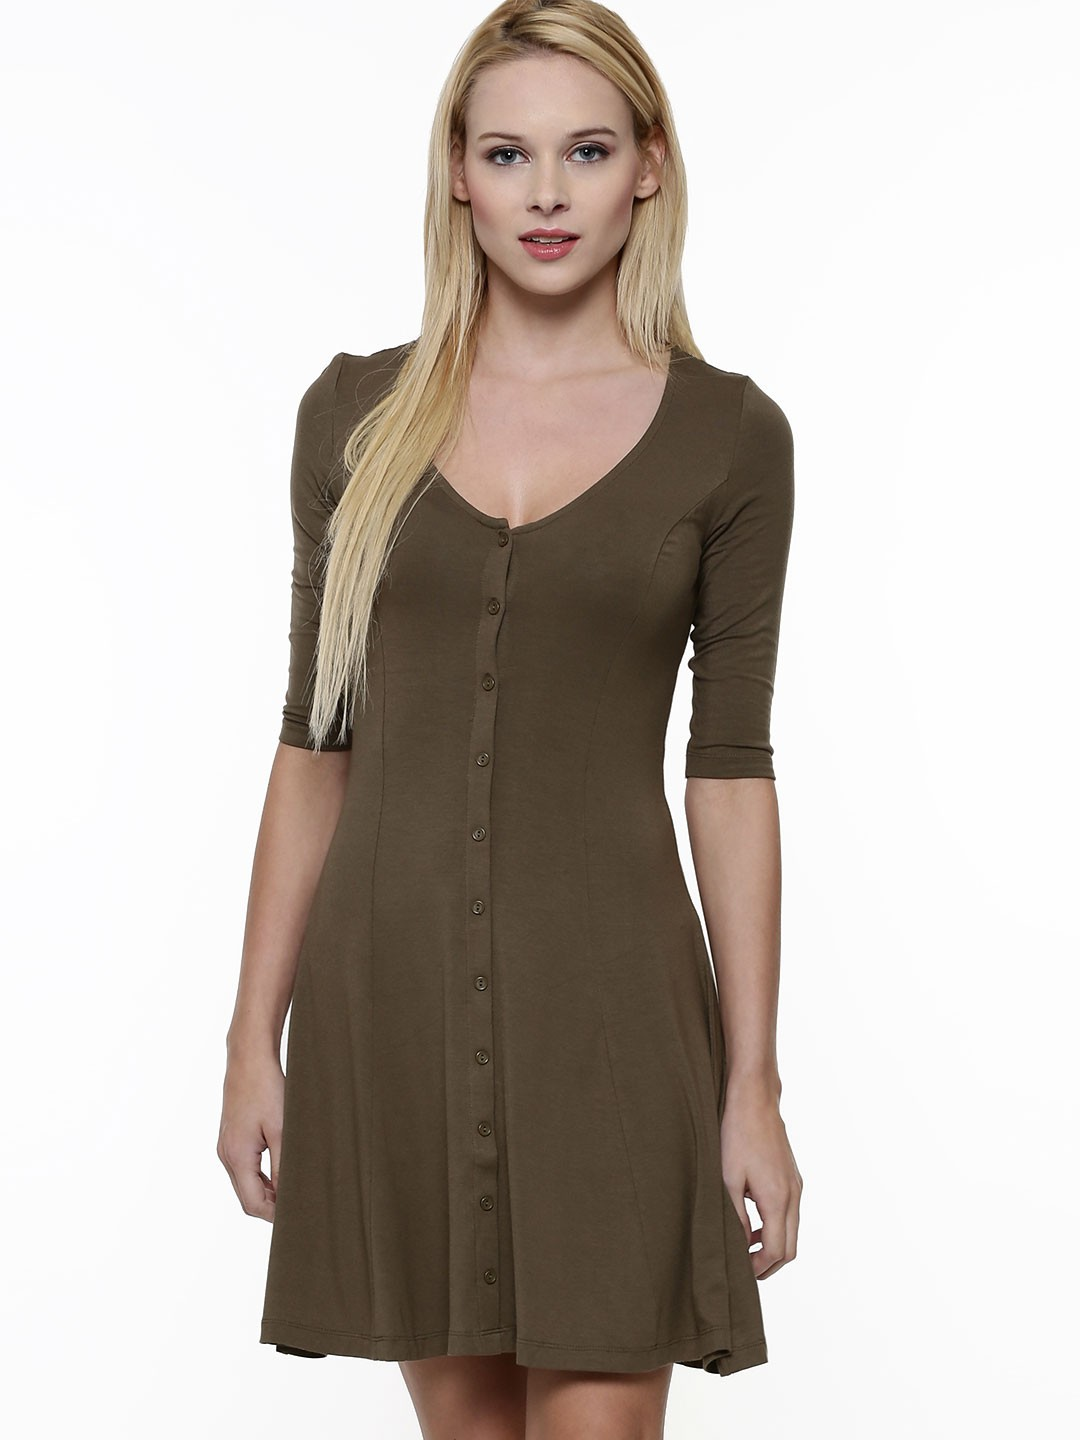 Discover cheap tunic dress online at metools.ml, we offer the seasons latest styles of tunic dress at discount price. We also offer Wholesale service.